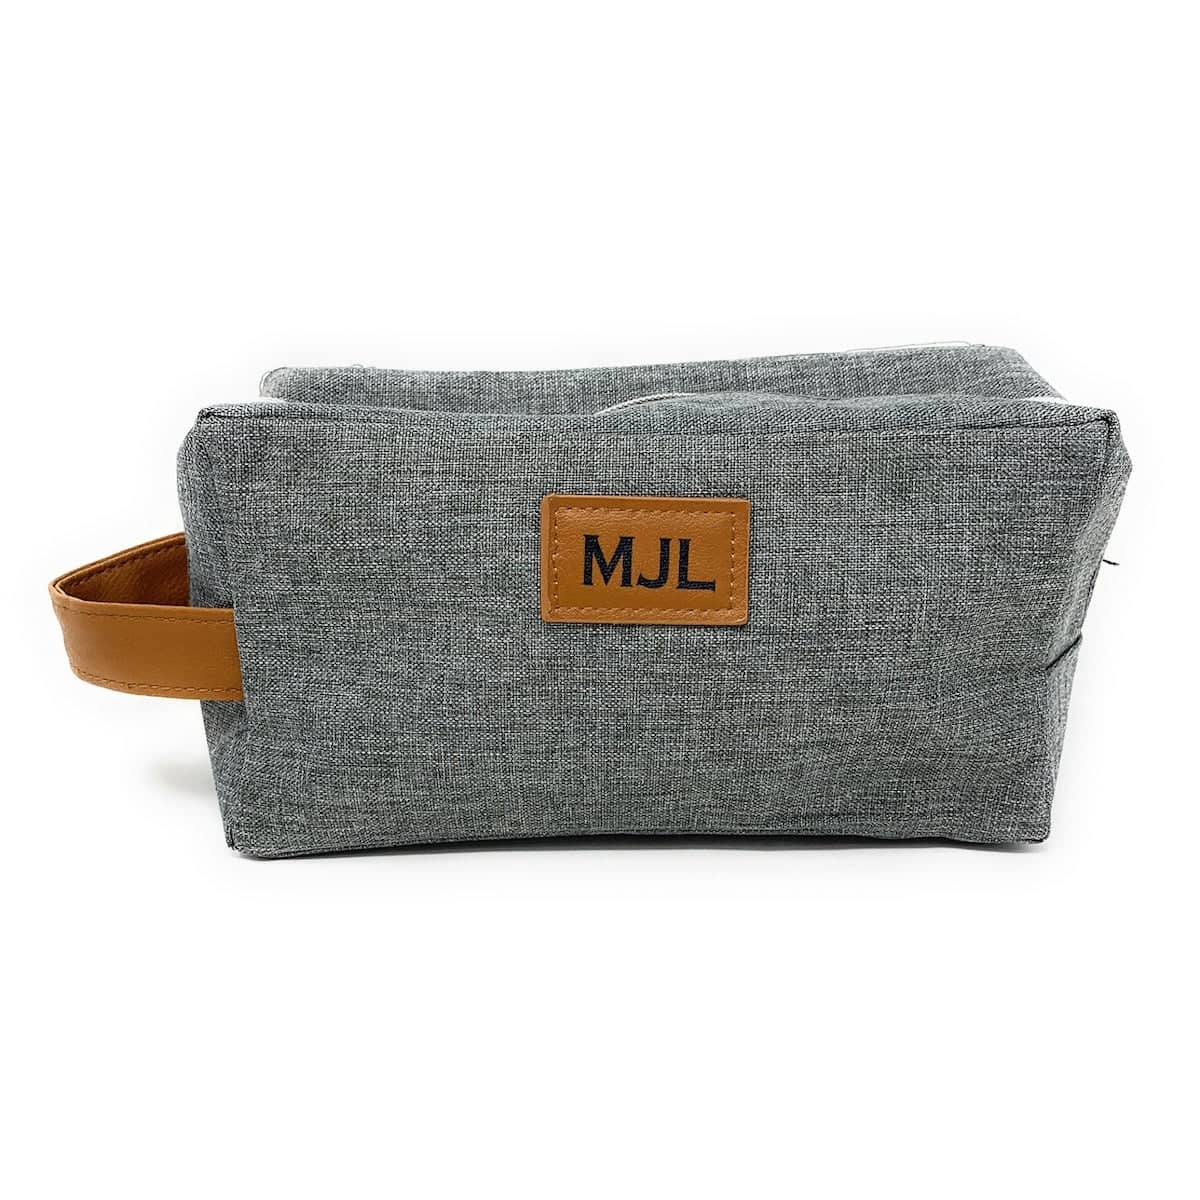 Men's Toiletry Bag gift idea